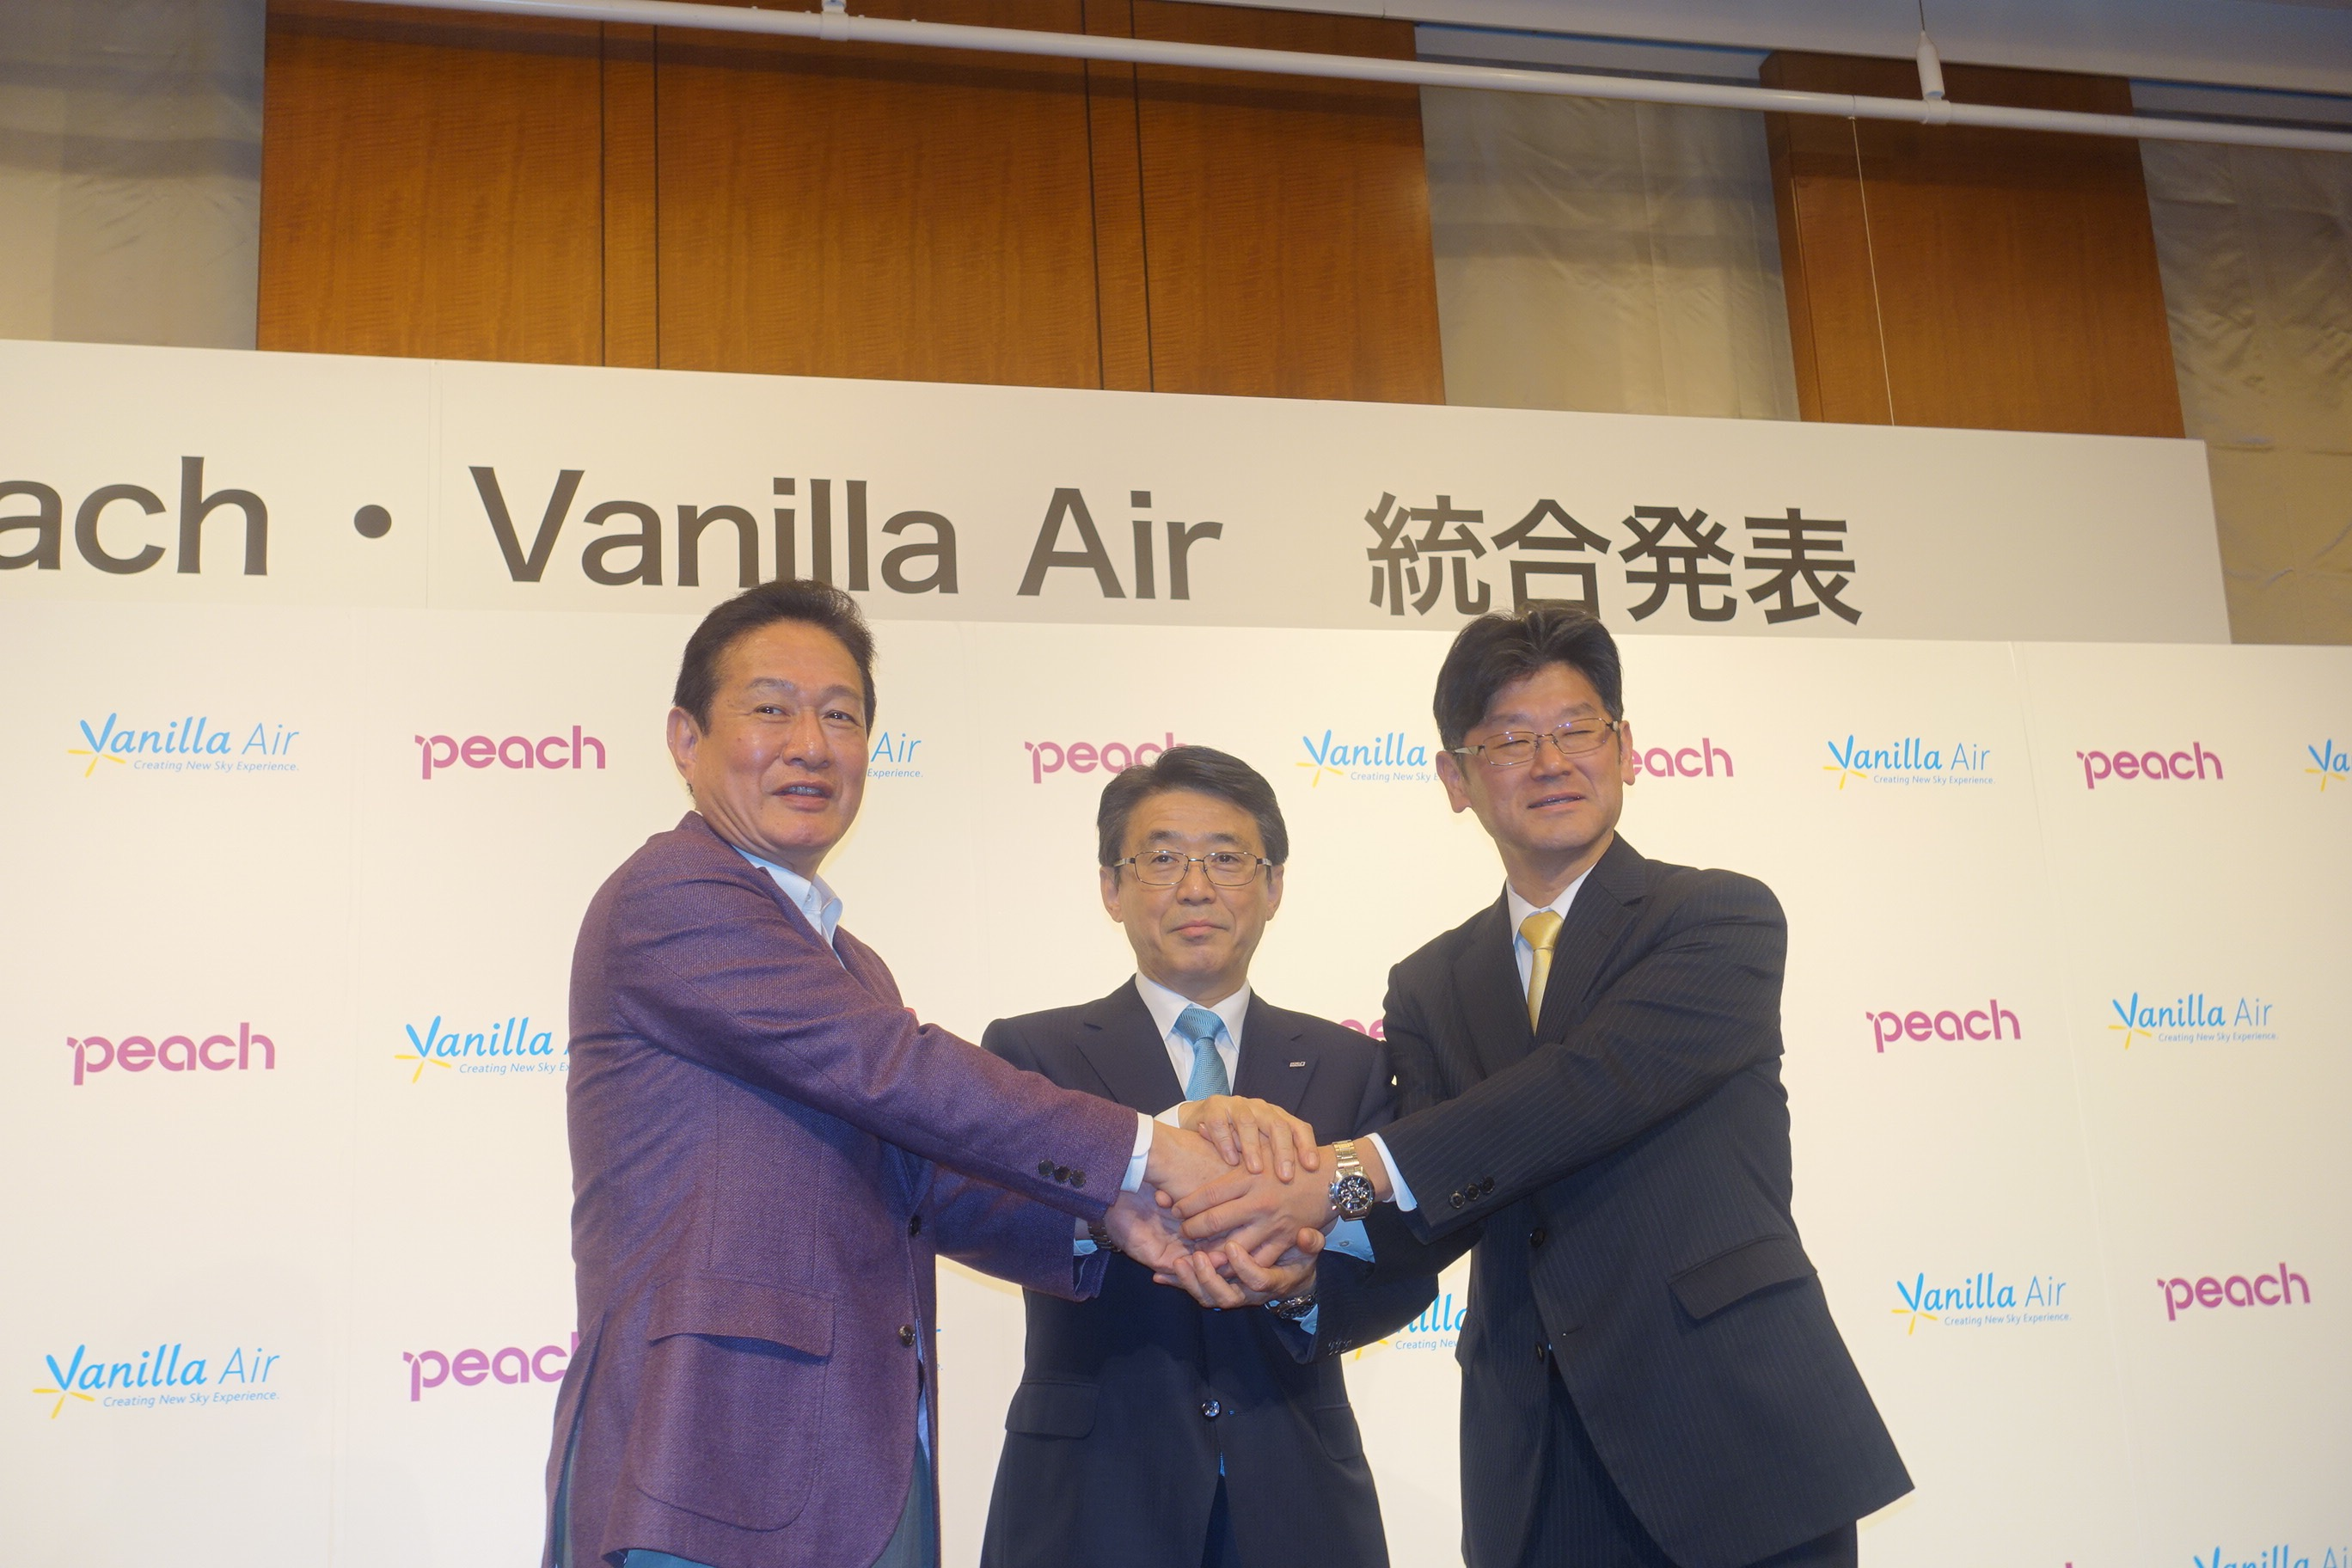 Japanese LCCs, Peach Aviation and Vanilla Air of ANA Group, will merge into Peach by the end of FY2019